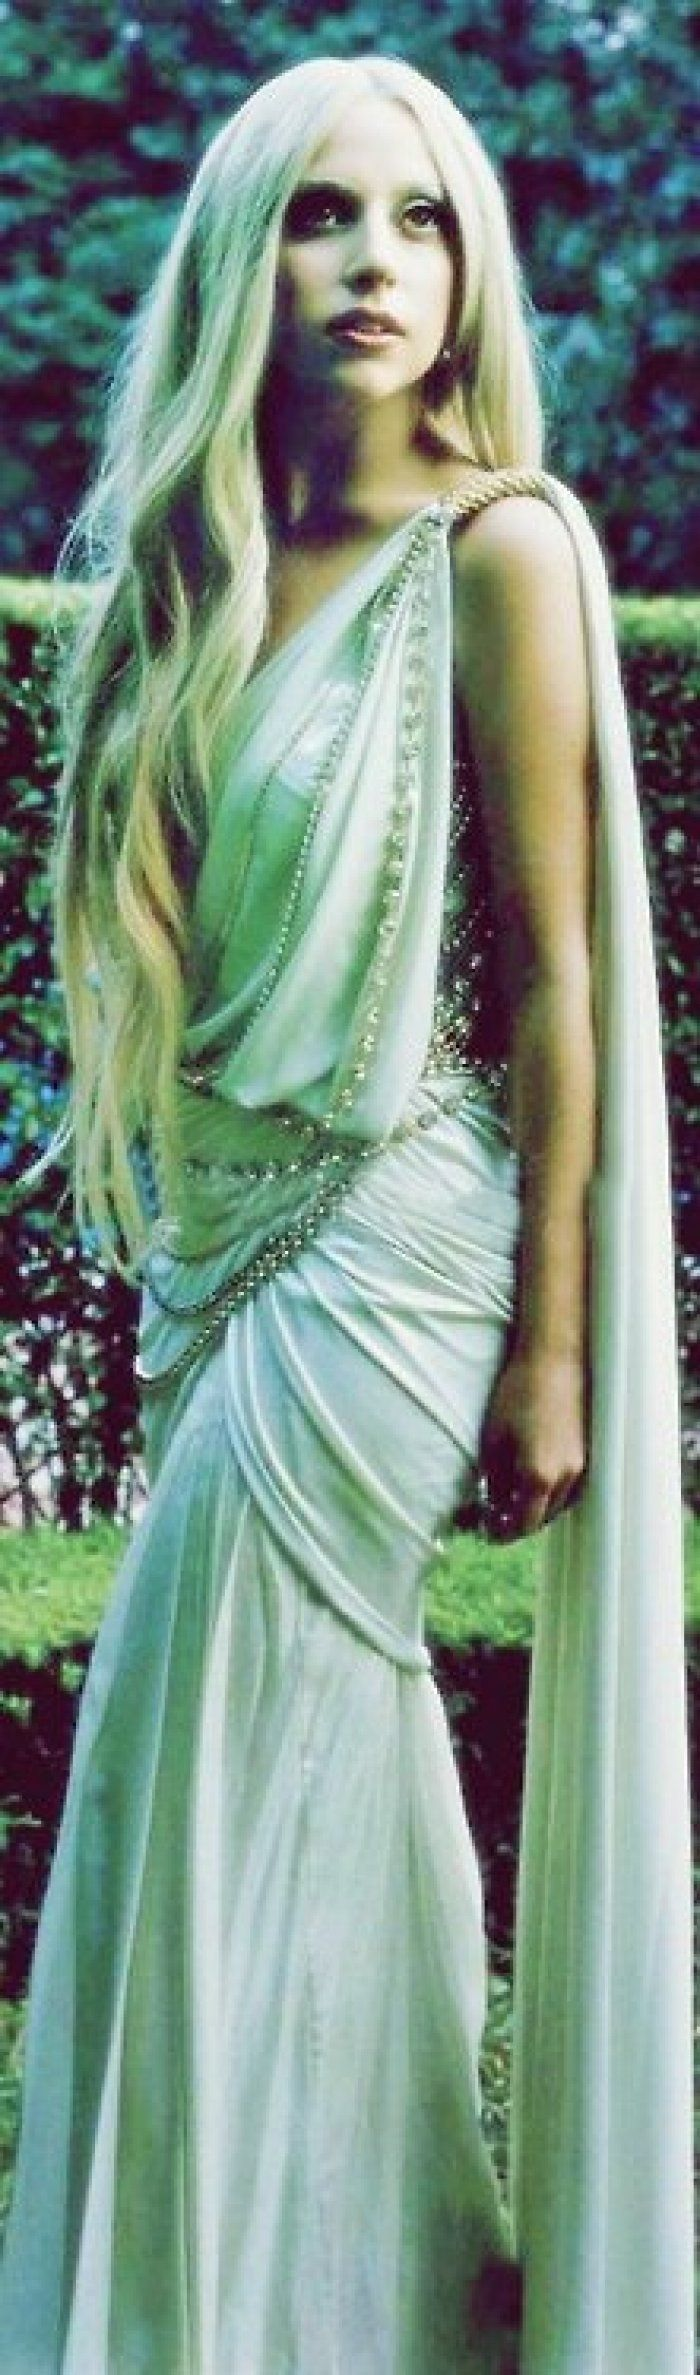 Gaga Greek Goddess...love her or not...we're talking about what she does! Outstanding!